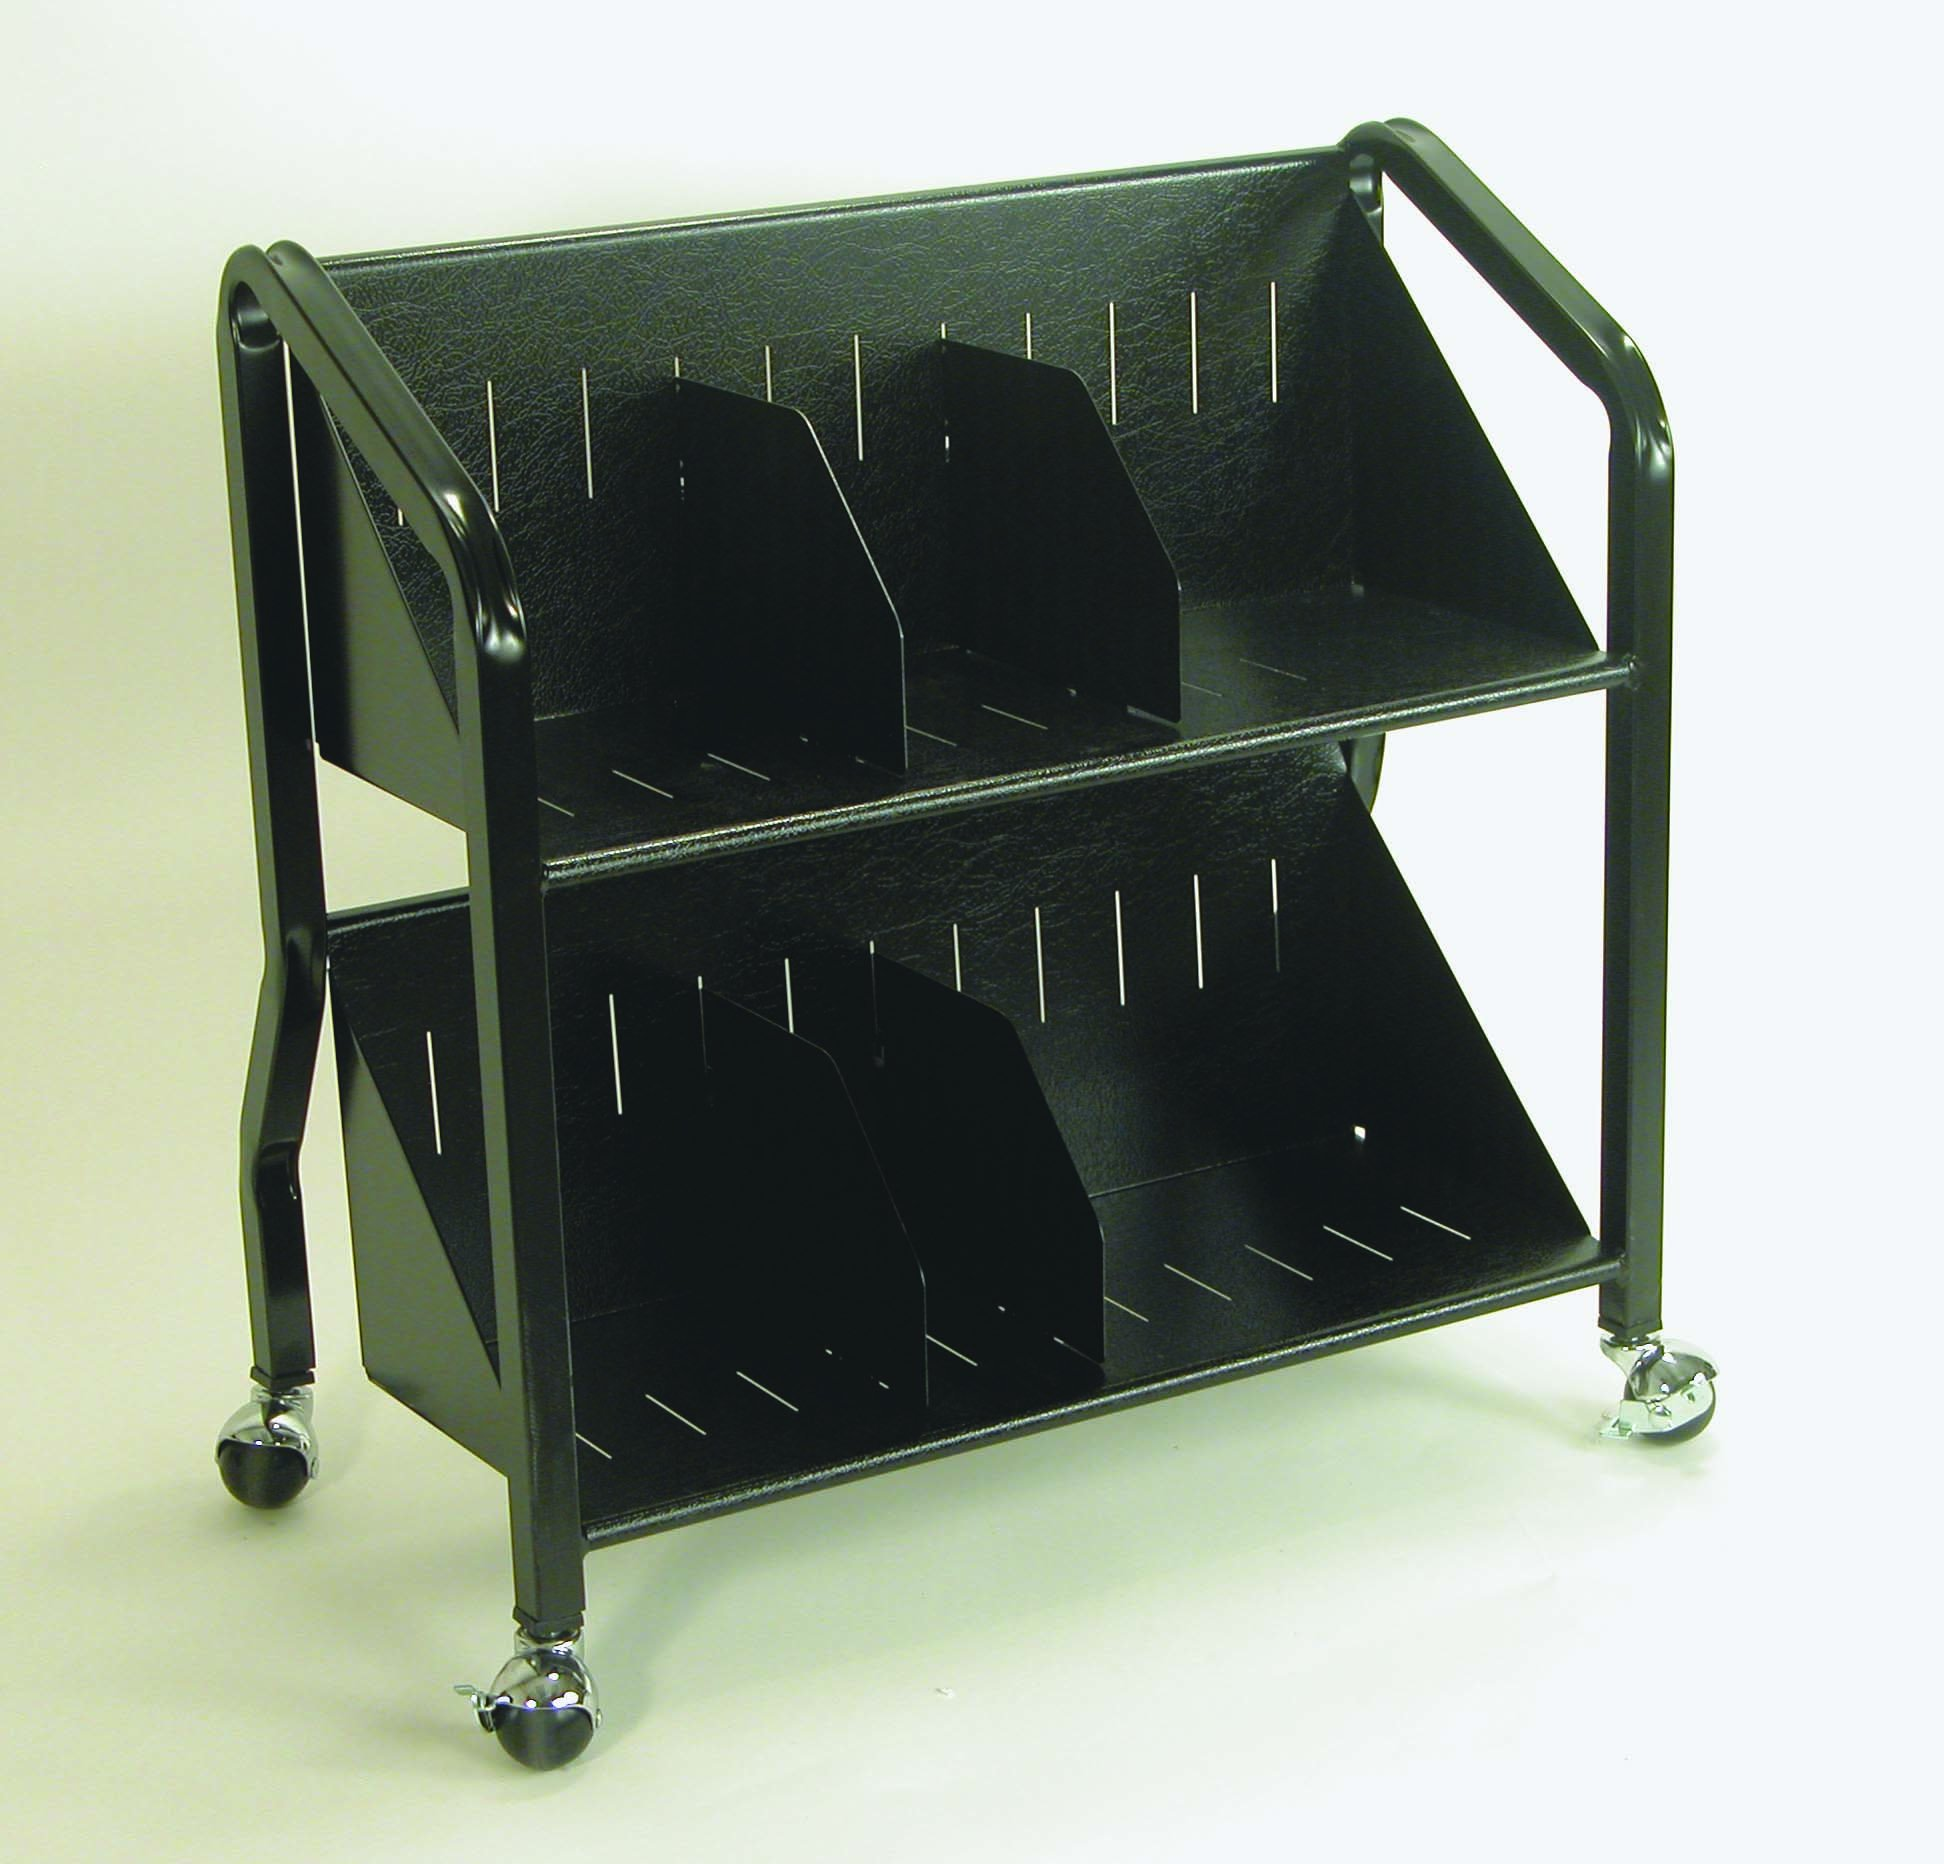 Buddy Products Two-Shelf Sloped Book Cart with Dividers, 15 x 27 x 29 Inches, Black (5413-4) by Buddy Products